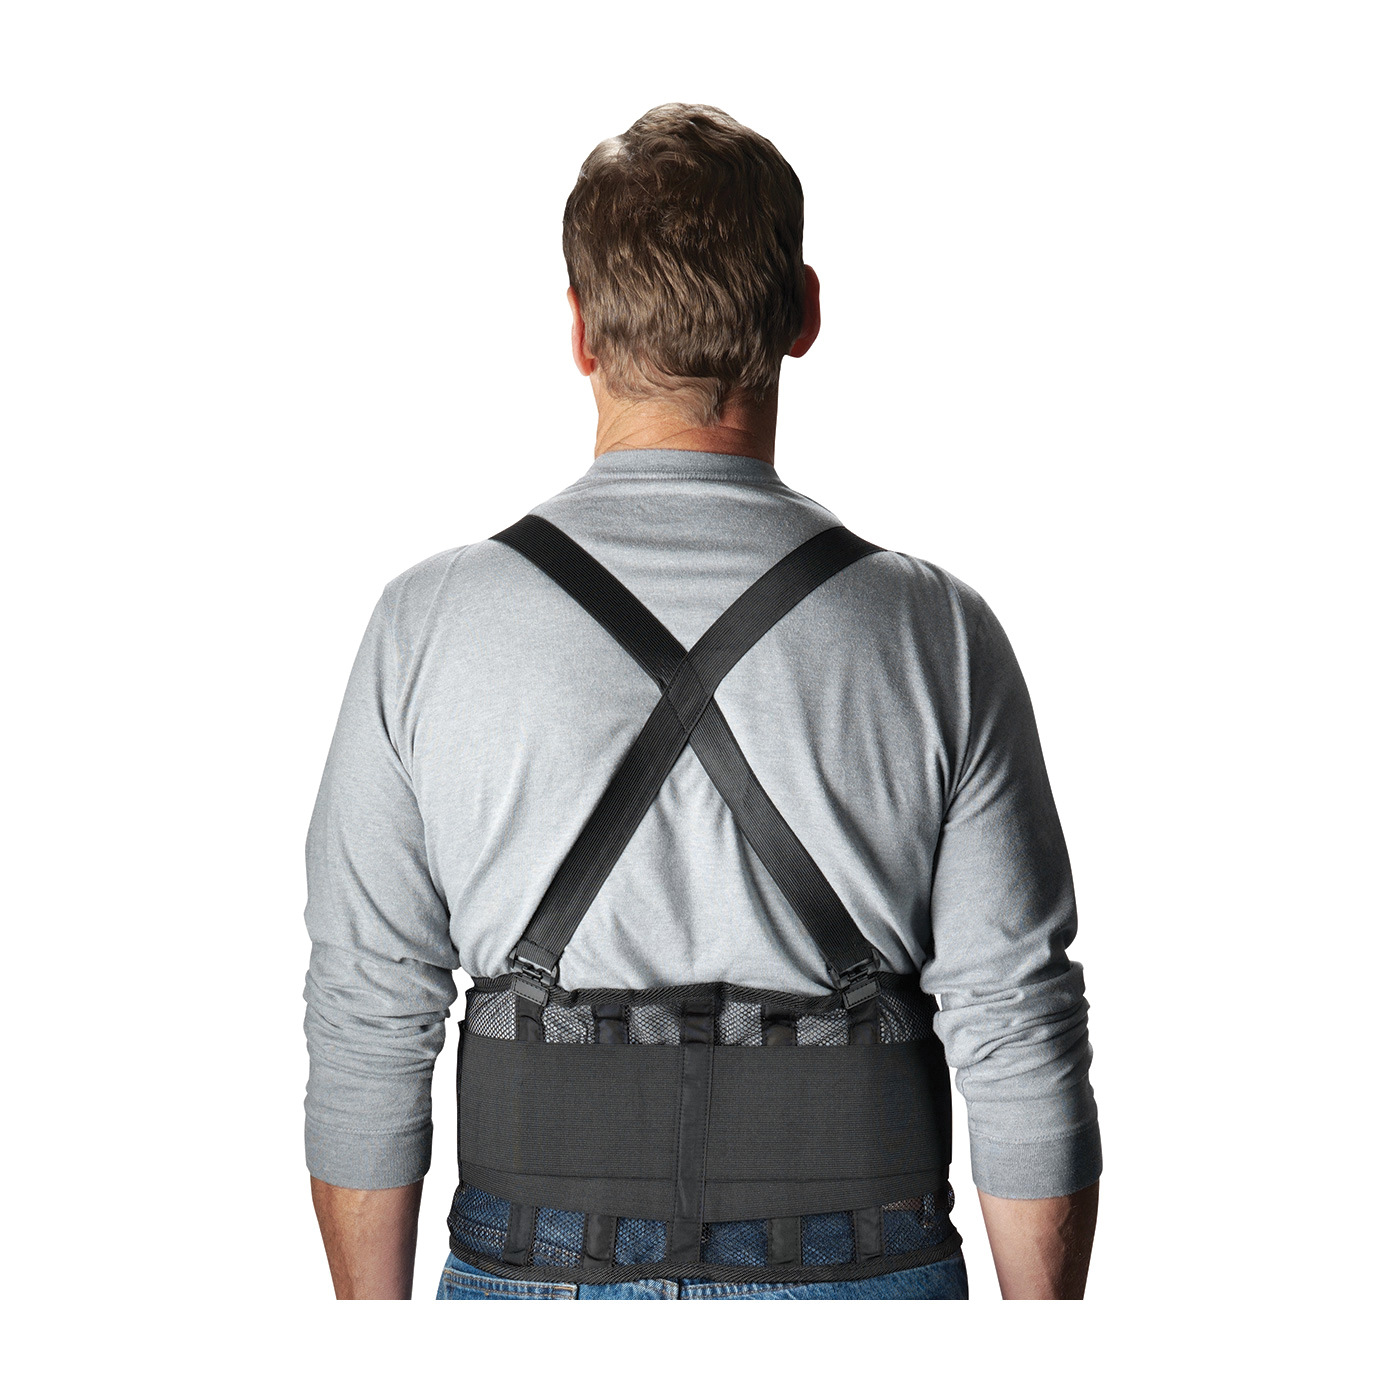 ProFlex® 11603 1100SF Standard Back Support Brace With Suspenders, M, 30 to 34 in Fits Waist, 8 in W, 280D Spandex®, Black, Hook and Loop Closure